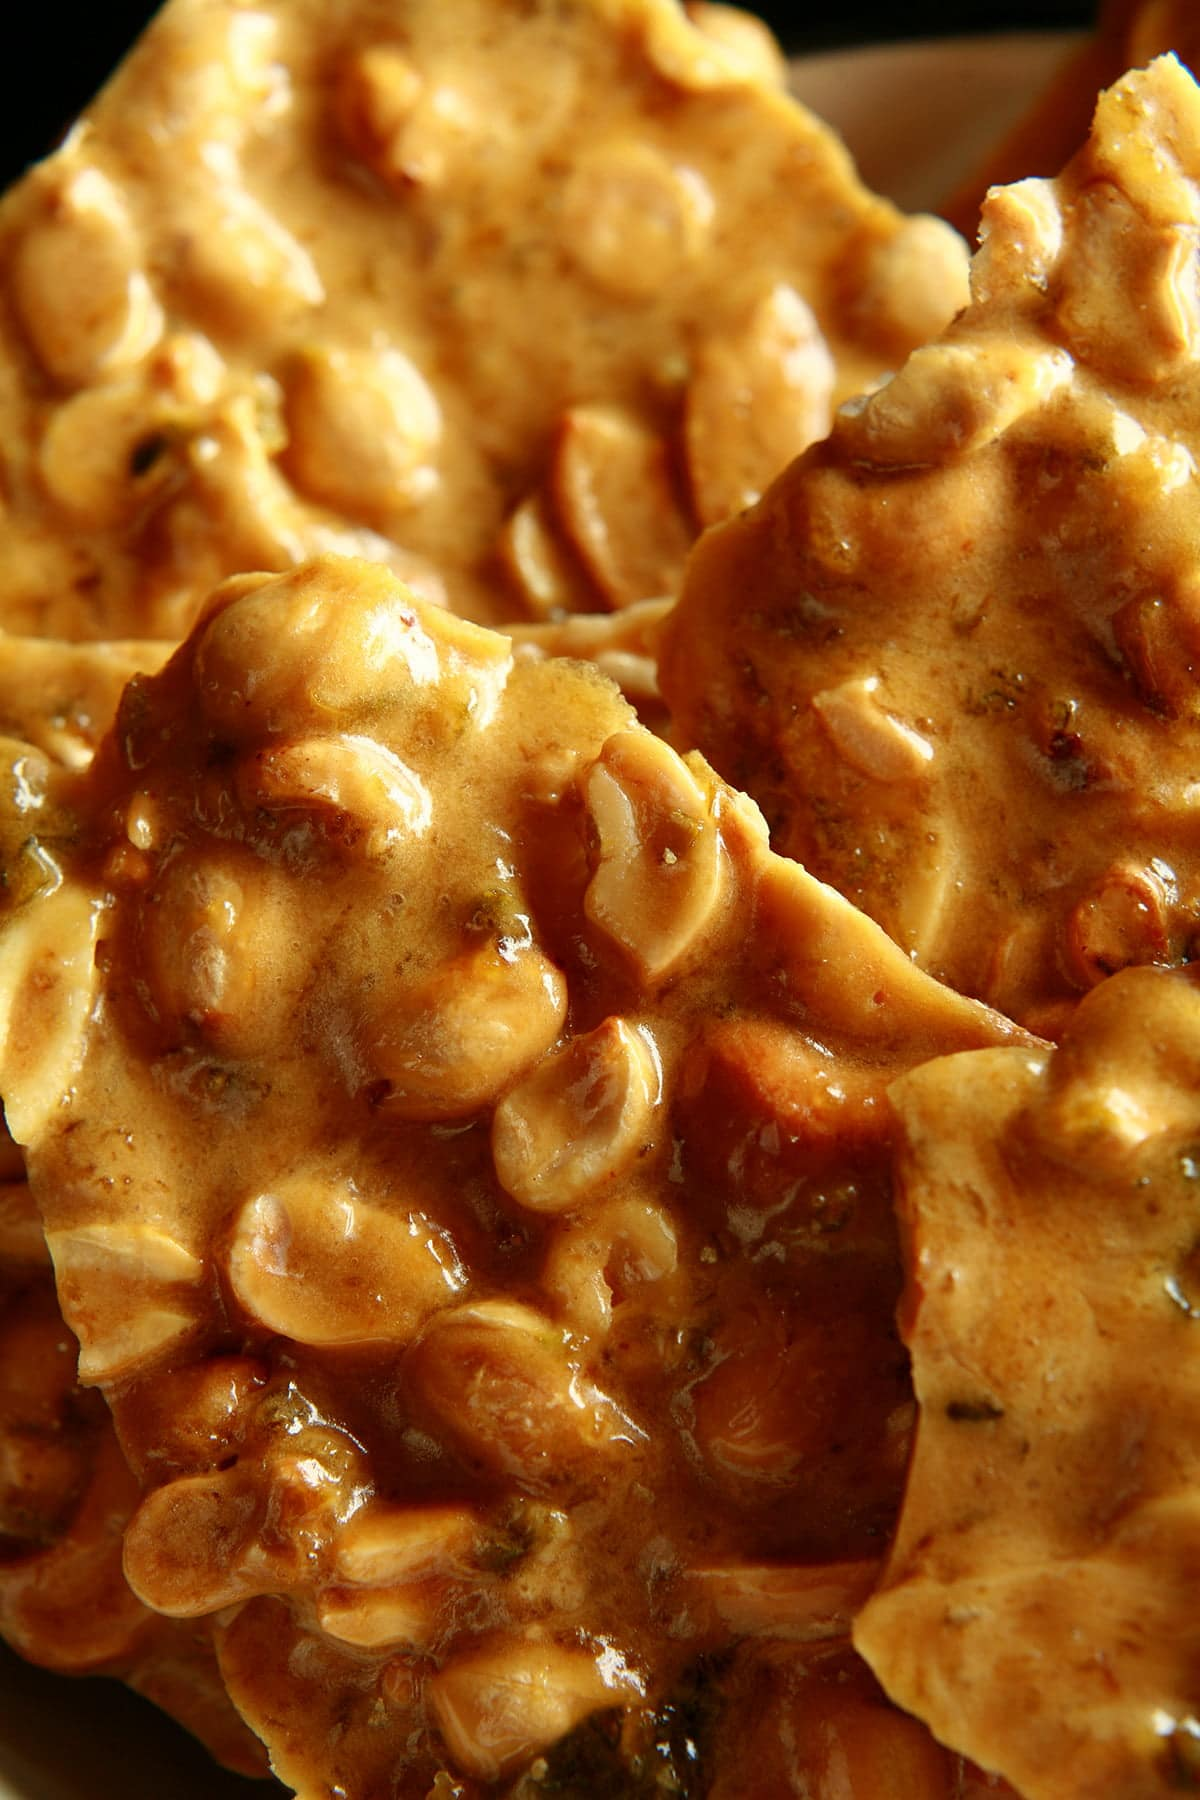 A close up view of peanut brittle with green flecks throughout - jalapeno pieces!